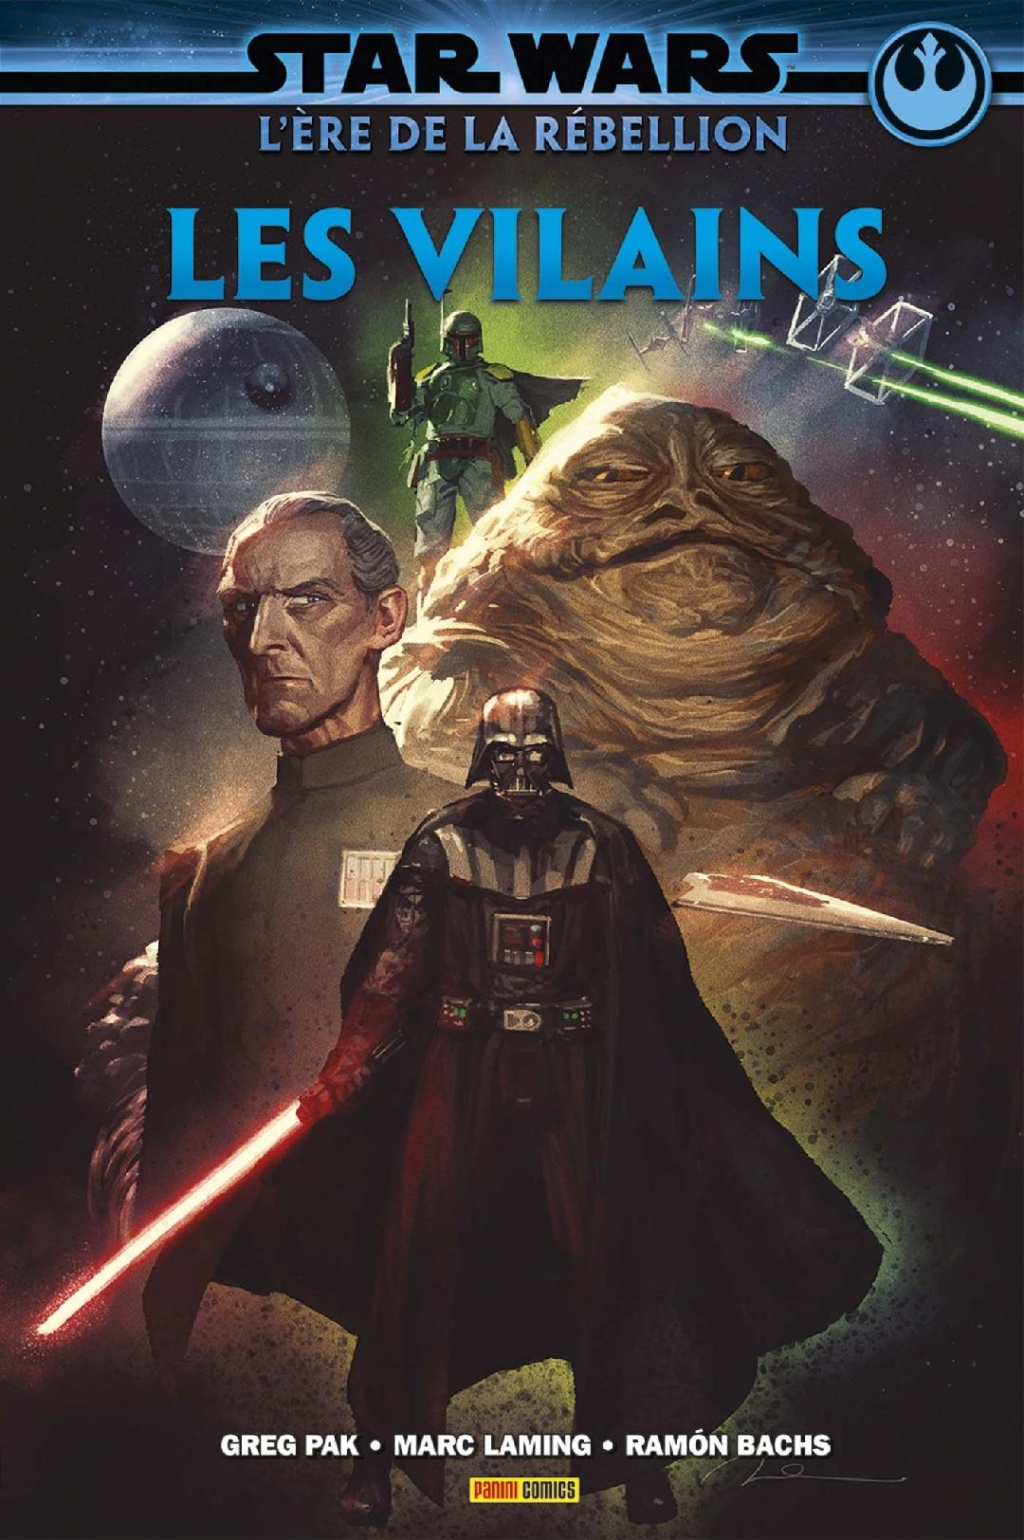 Star Wars - L'ère de la Rébellion: les Vilains - PANINI Ere_re10